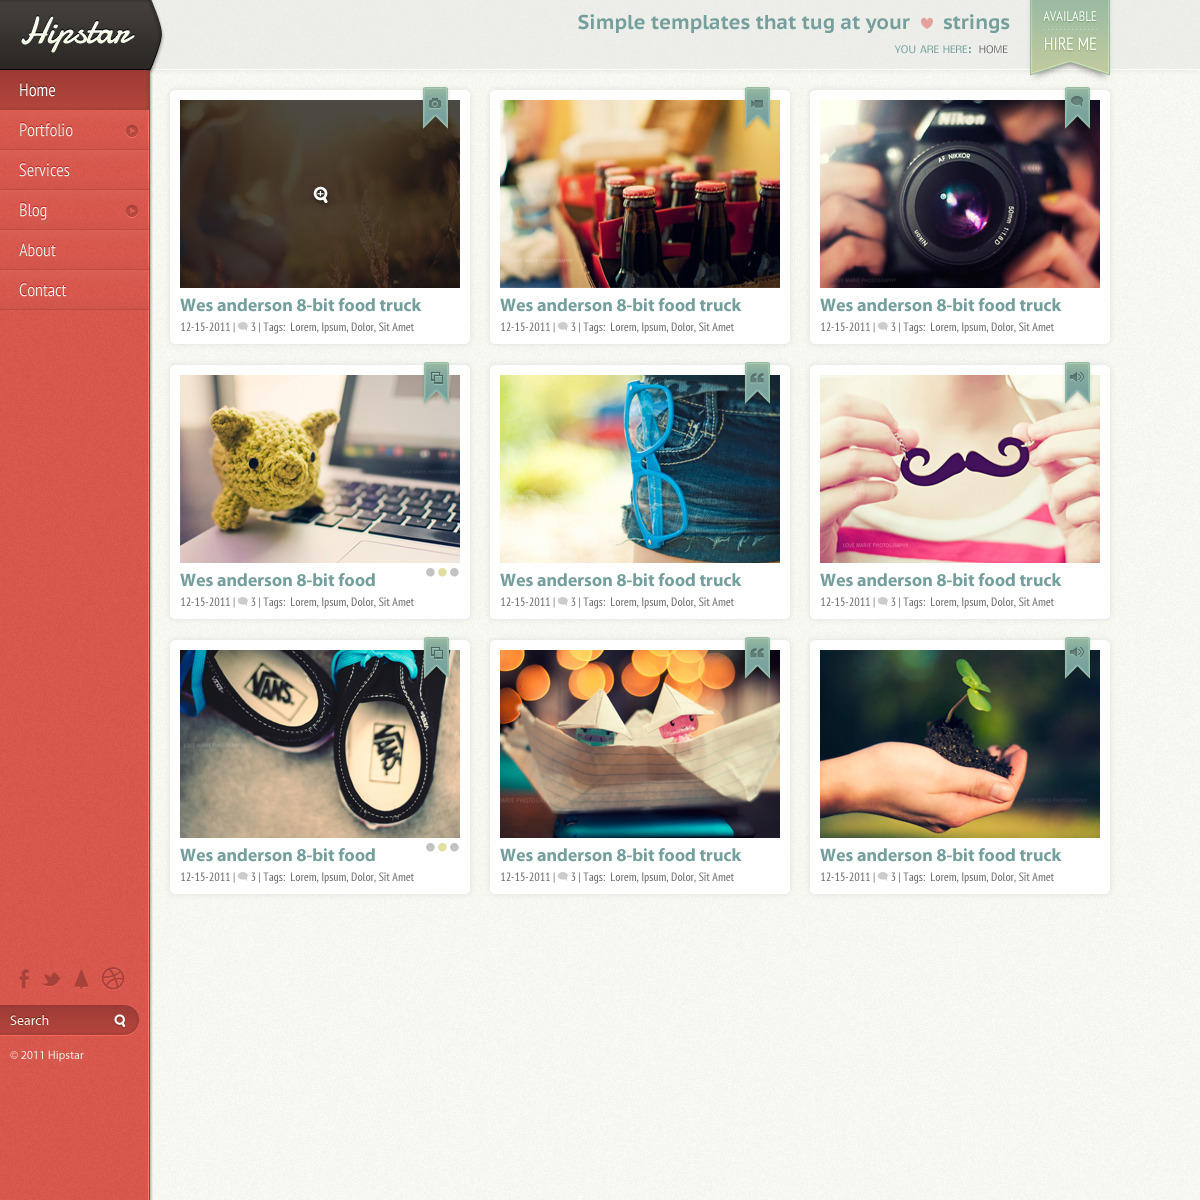 Hipstar - Creative PSD Template - Portfolio template as large grid layout.